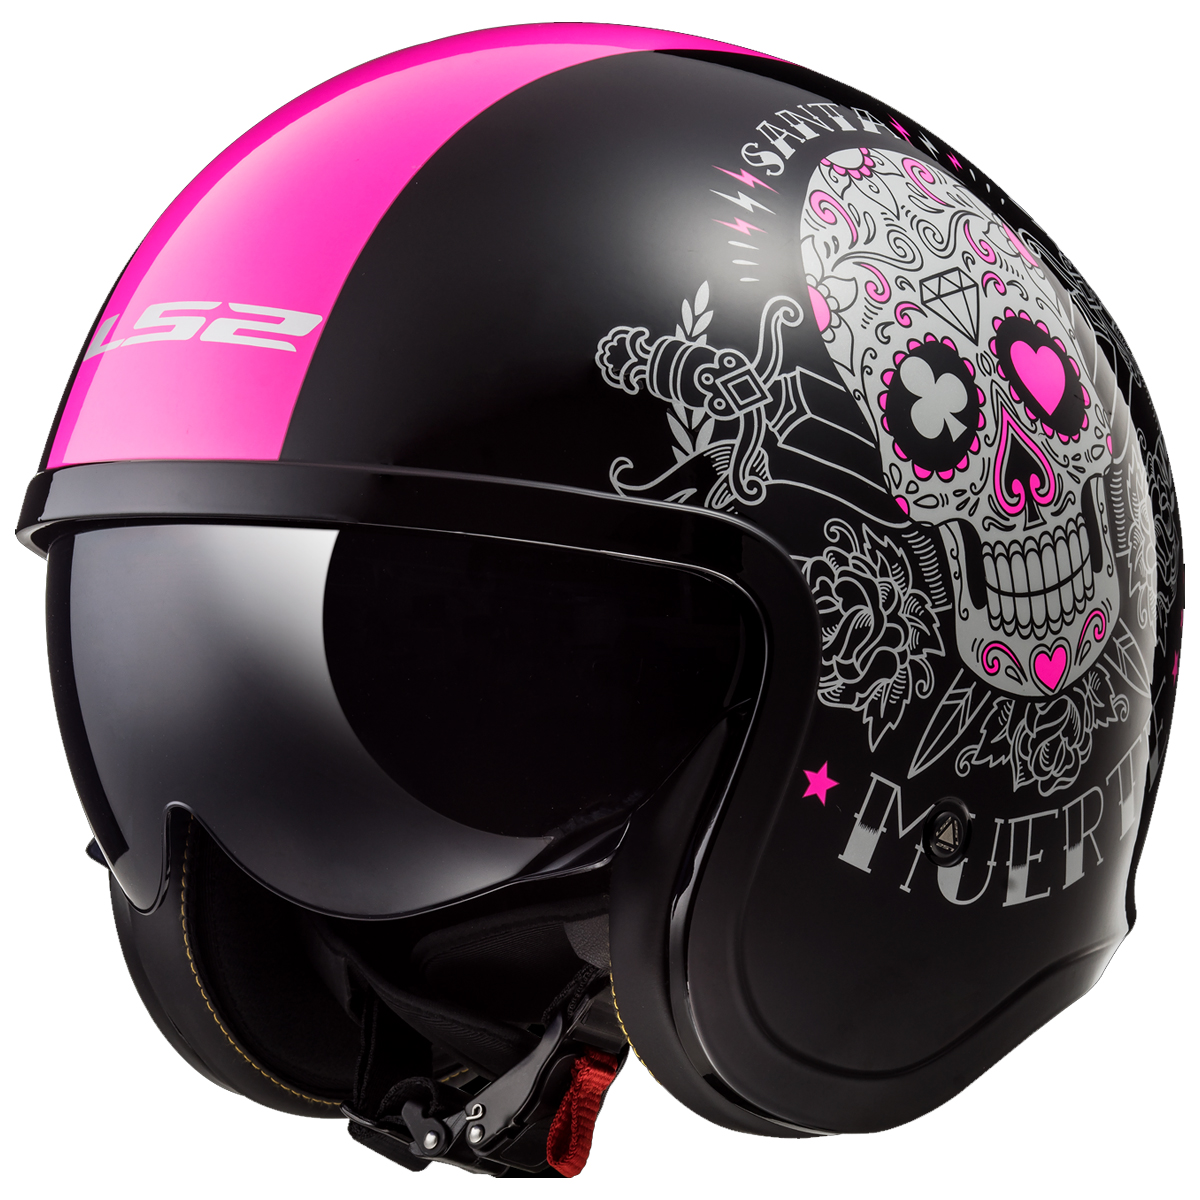 LS2 Spitfire Bomb Rider Motorcycle Helmet Open Face Scooter Drop Down Sunvisor